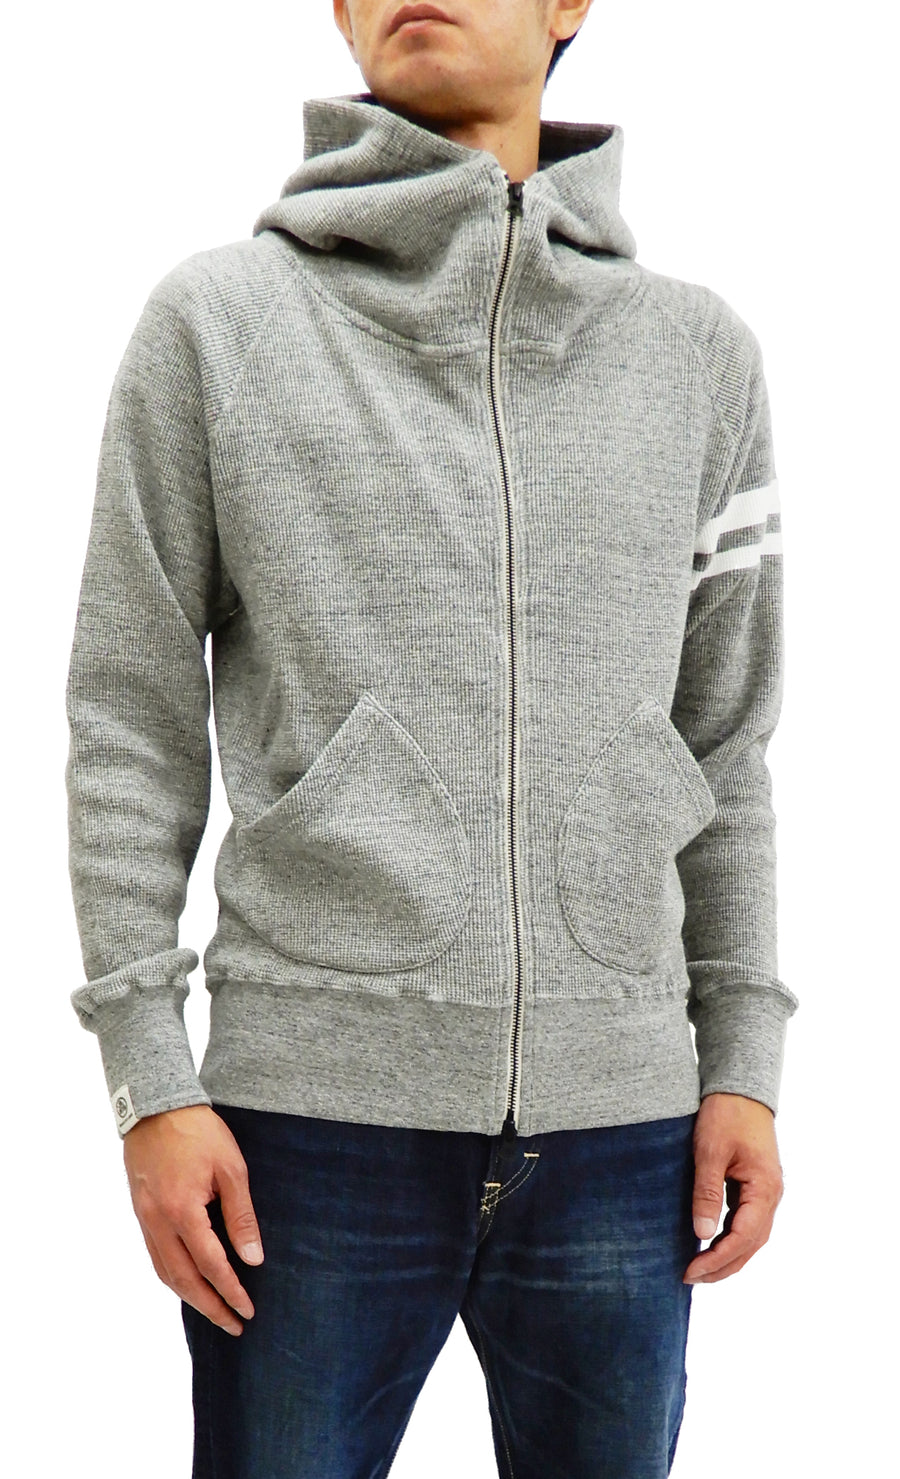 Momotaro Jeans Waffle-Knit Hoodie Men's Full Zip Hooded Thermal Shirt 07-045 Gray